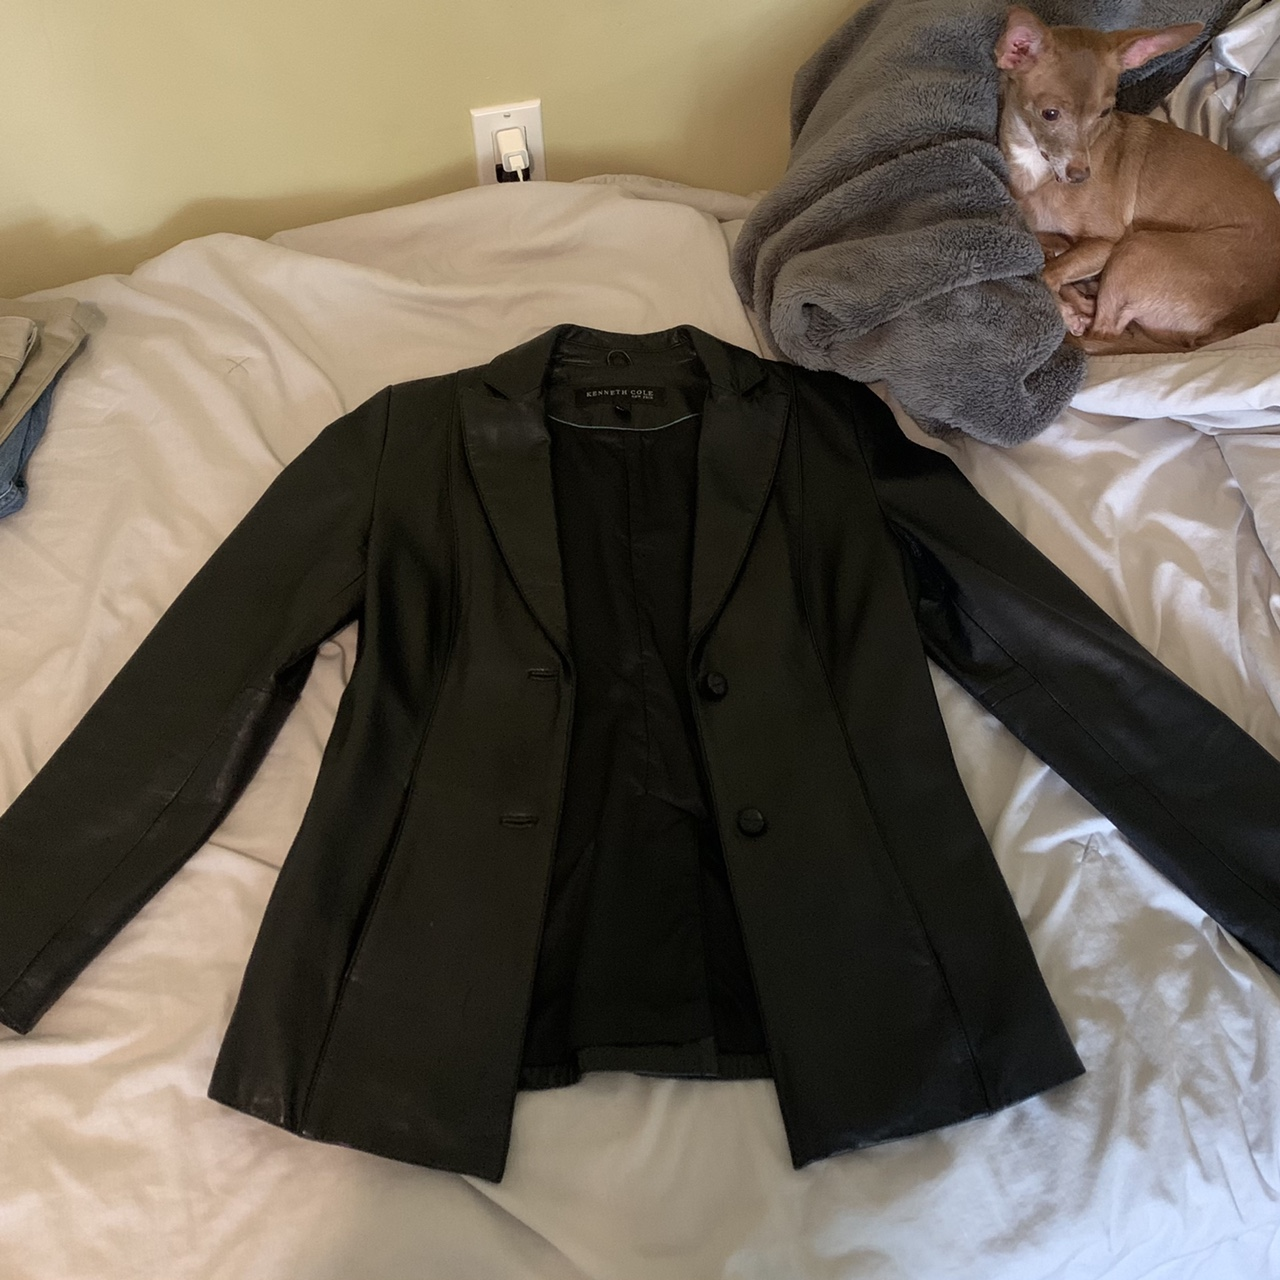 Product Image 1 - Black leather jacket by Kenneth